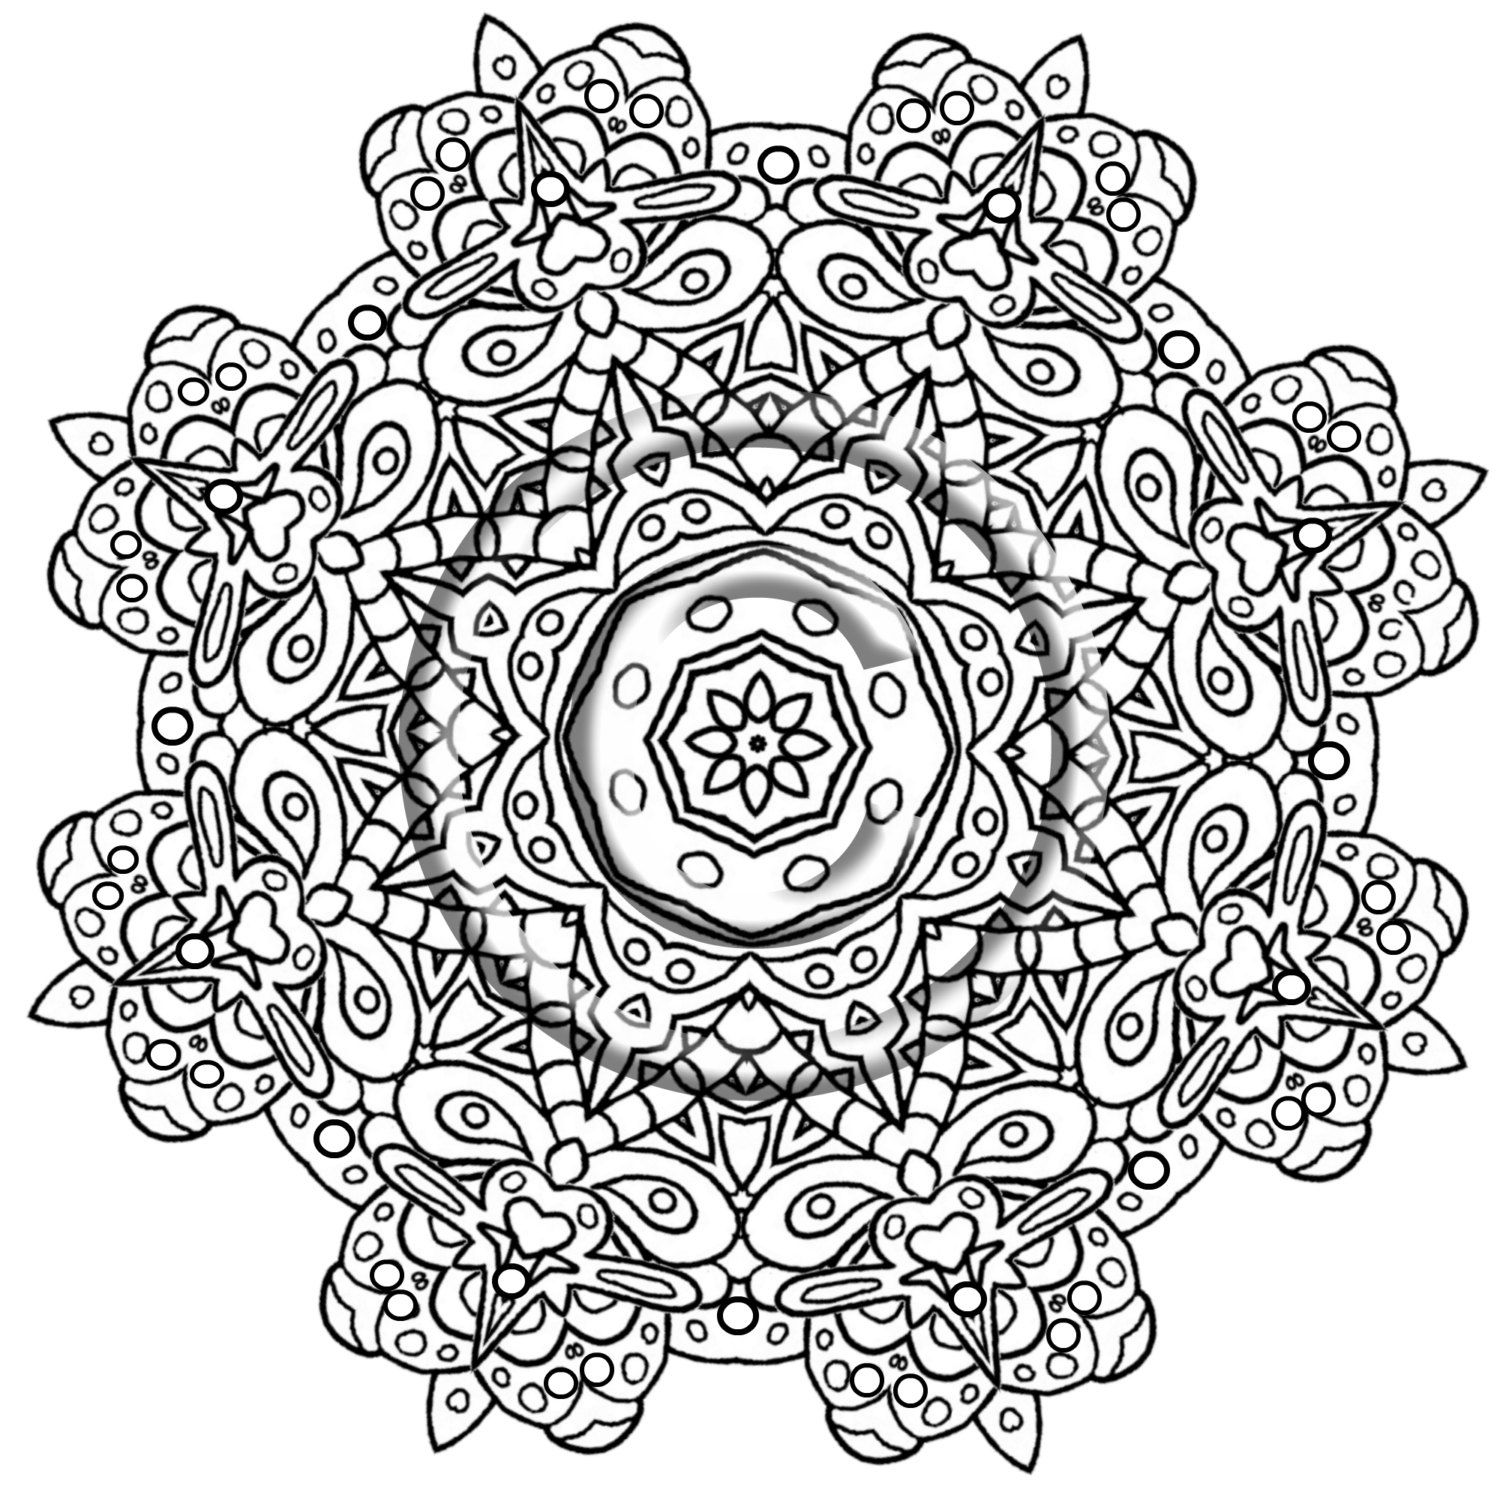 intricate coloring pages intricate design coloring pages at getdrawings free download coloring intricate pages